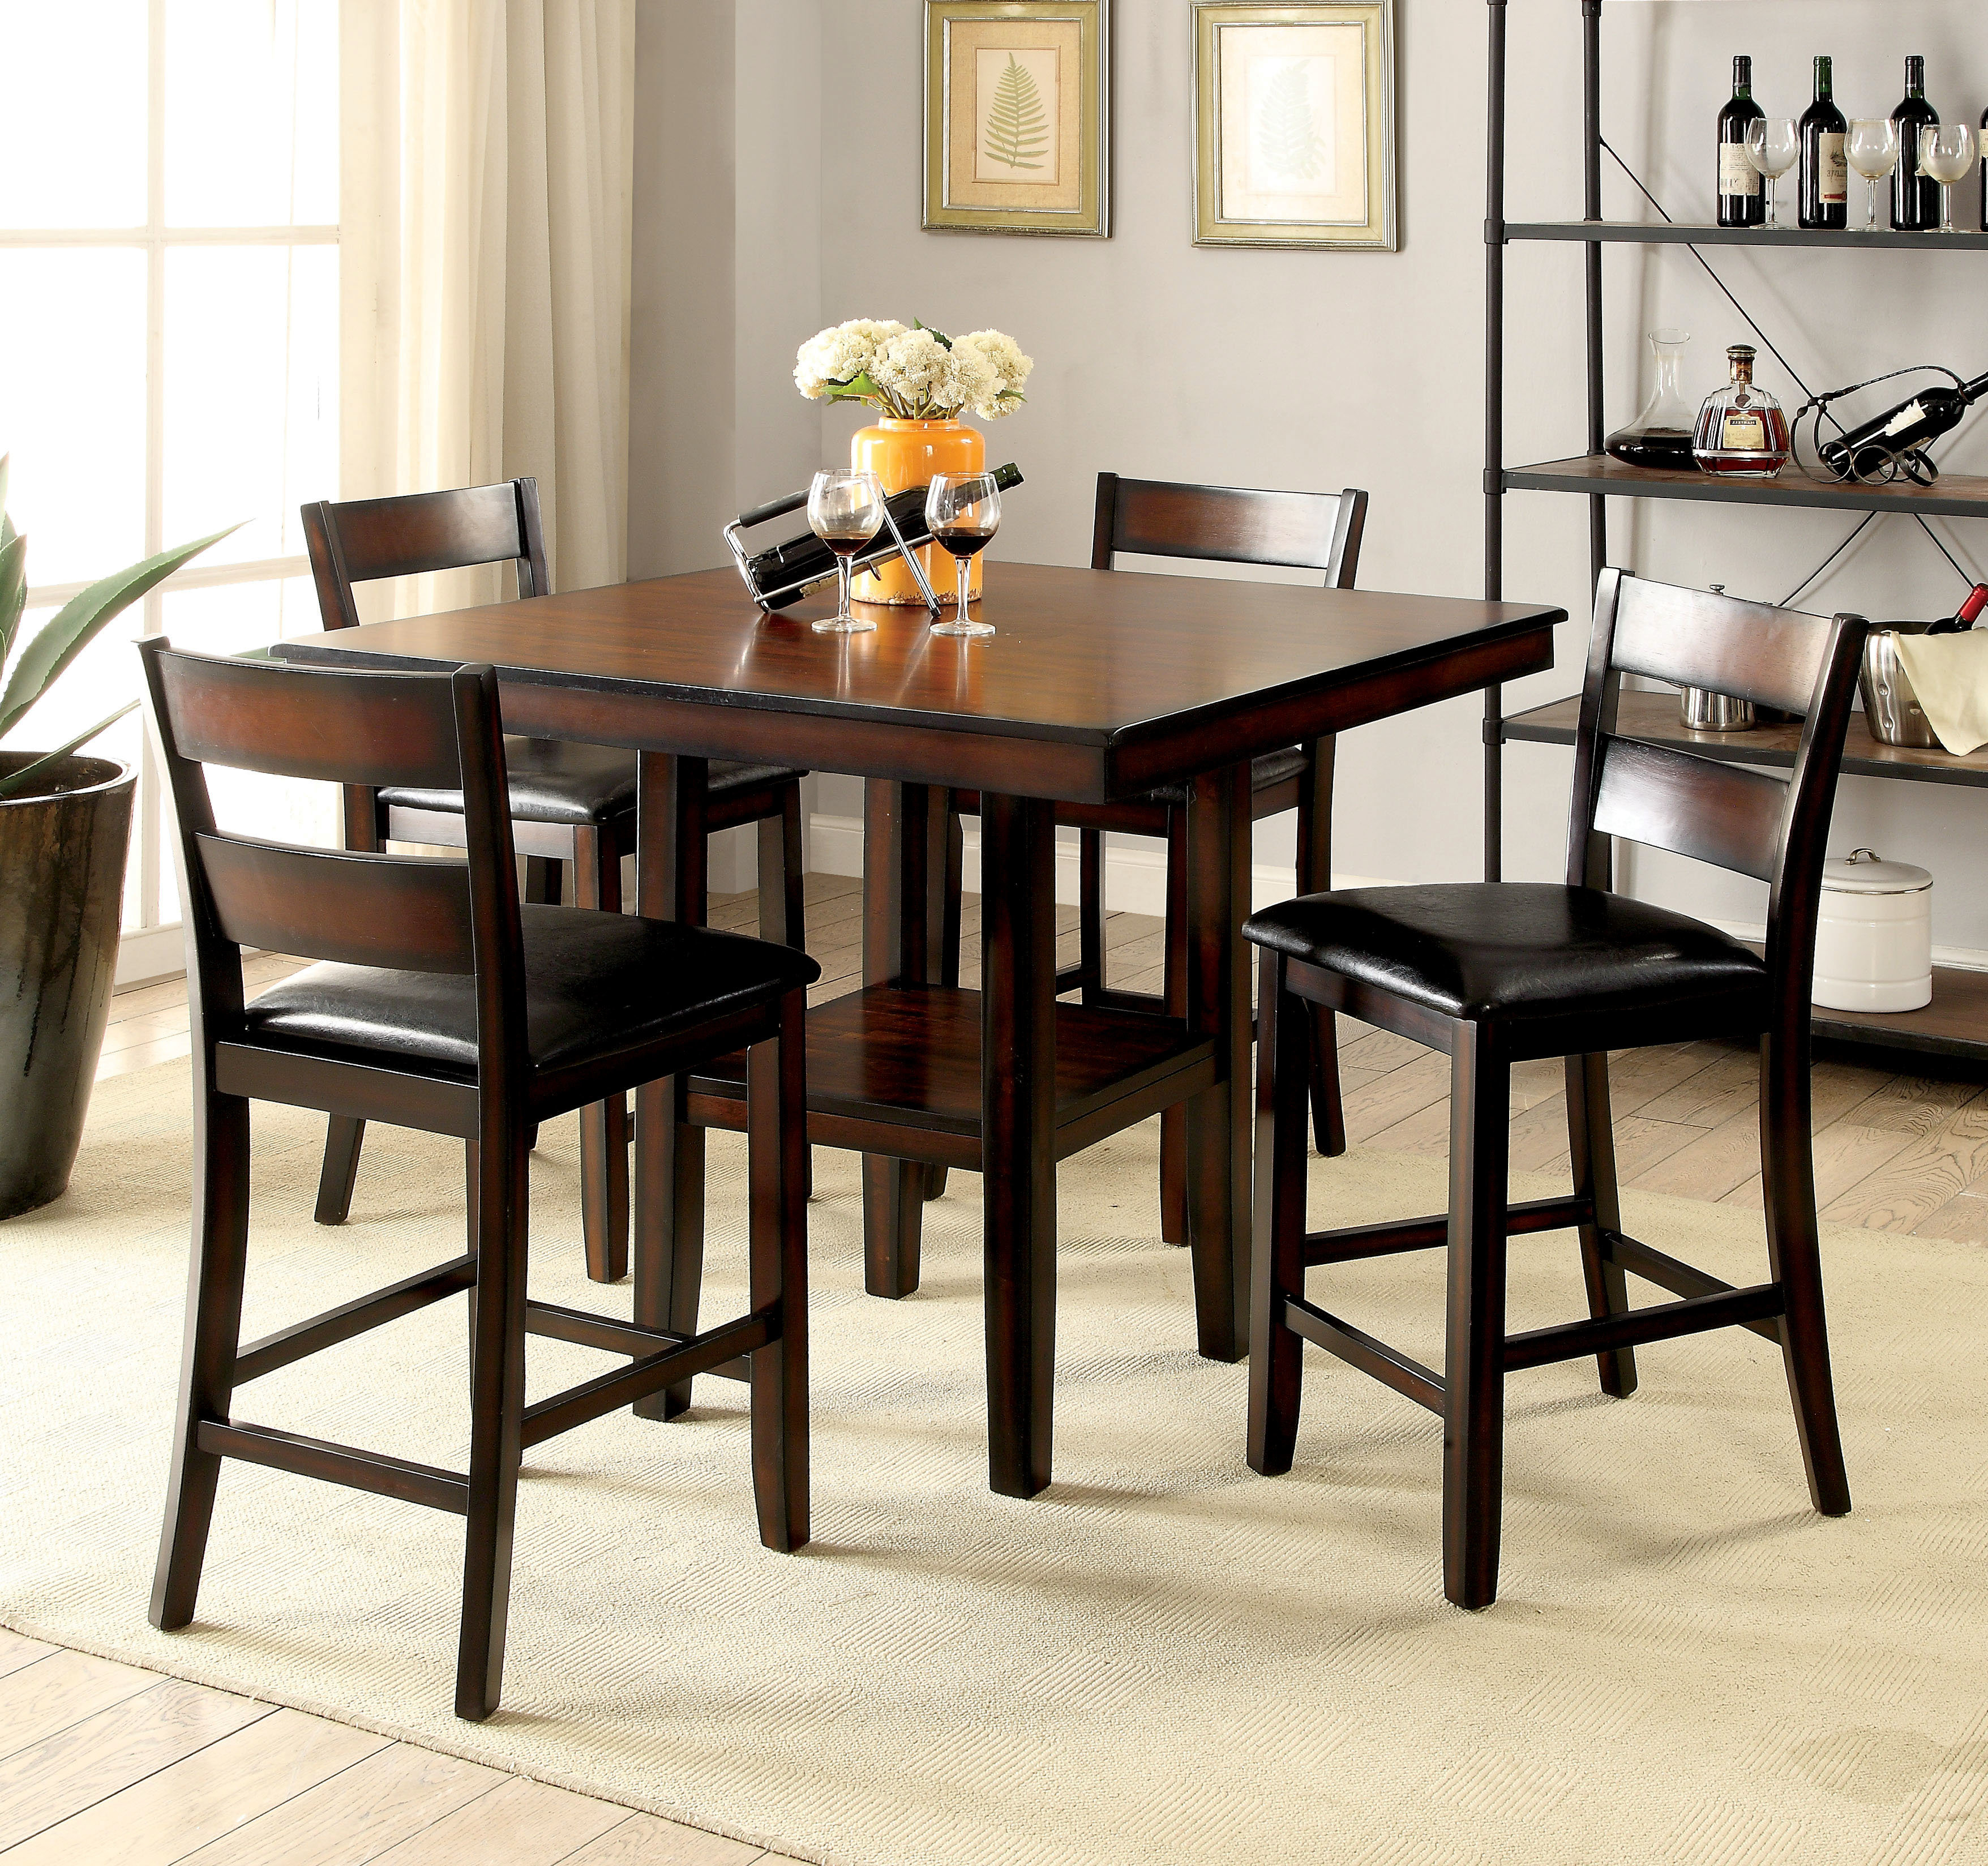 Middleport 5 Piece Dining Sets Inside Newest Red Barrel Studio Daphne 5 Piece Counter Height Dining Set & Reviews (View 17 of 25)